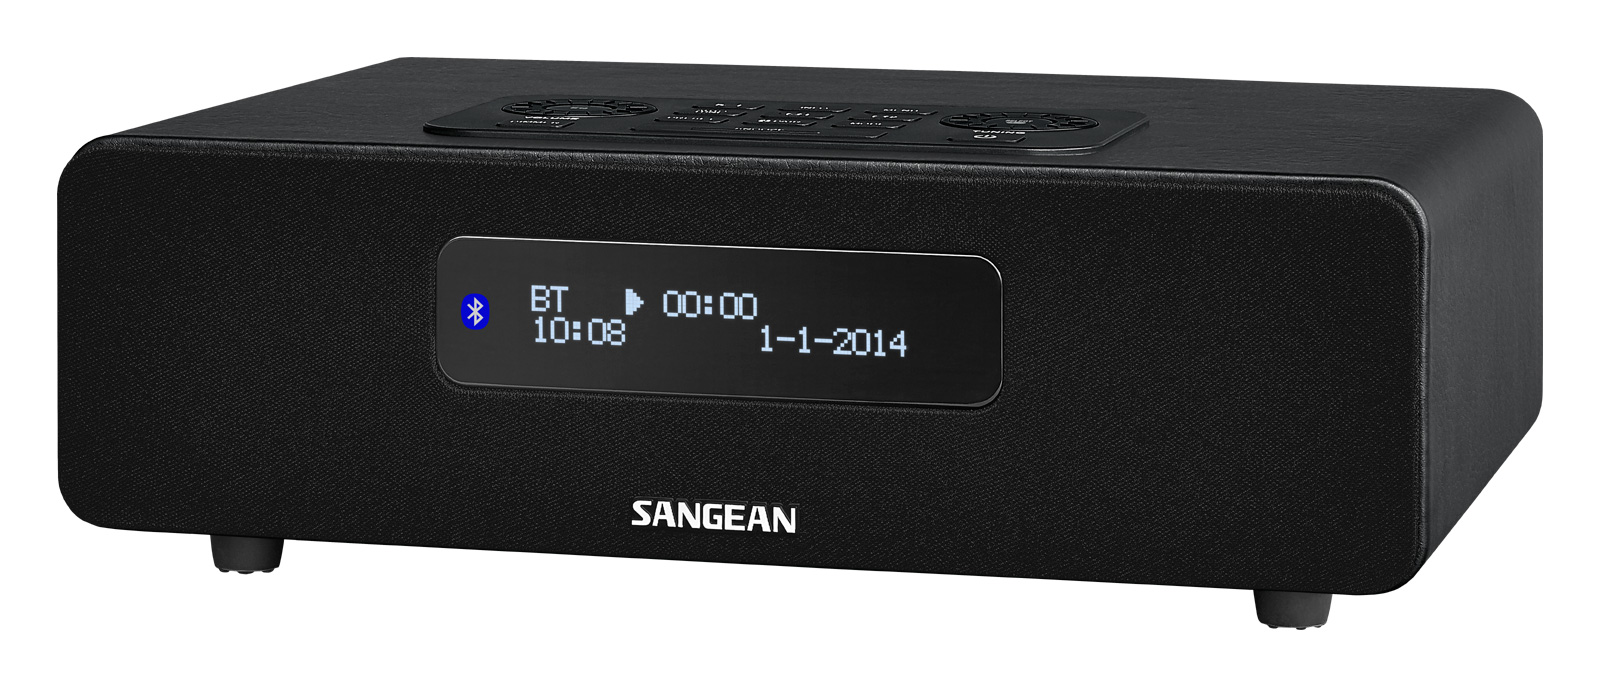 Sangean Dpr 26bt B Dab Fm Rds Bluetooth Digital Stereo Radio Receiver Black also First Transceiver With Built In Freedv moreover Fits Lexus Ls400 1990 1992 Double Din Stereo Harness 3 as well 33558947 moreover File Digital Clock Radio Basic. on table radios with digital tuning